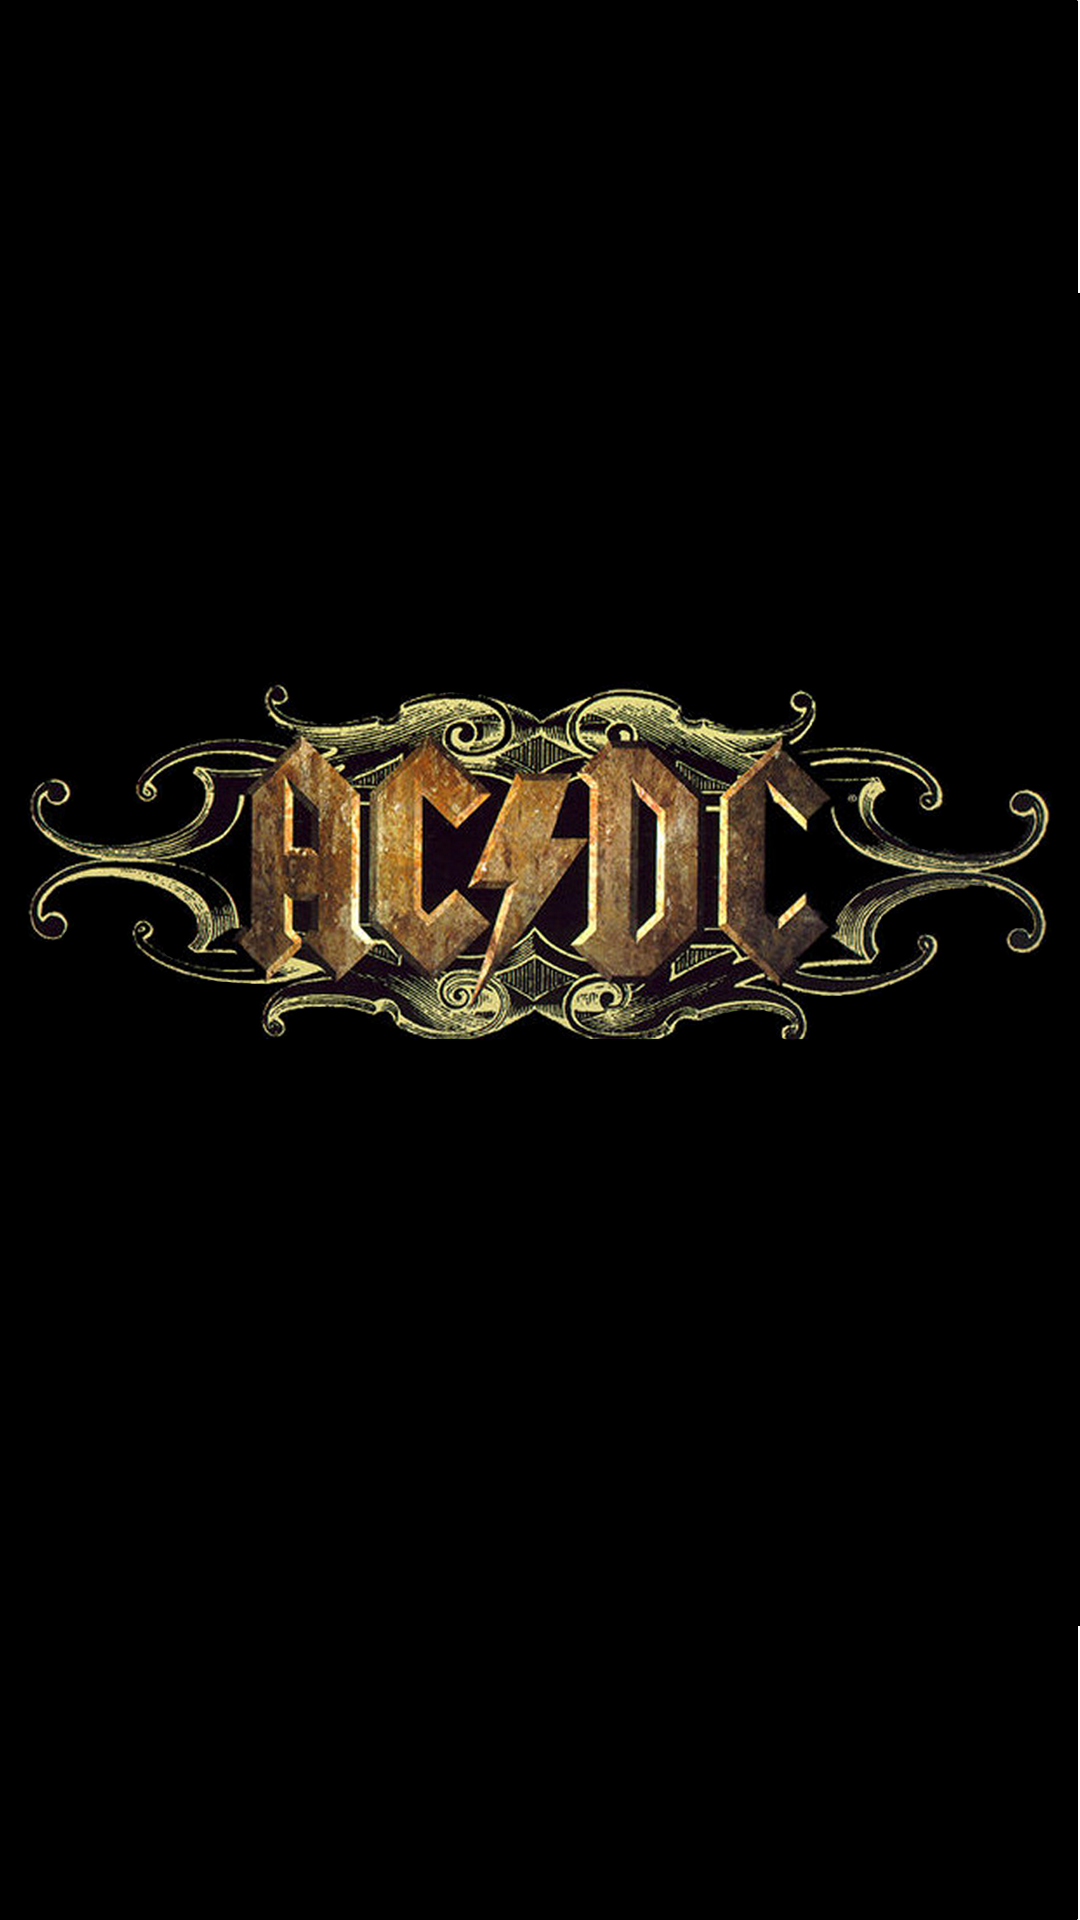 click here to download 1080x1920 pixel acdc rock band logo android best wallpaper